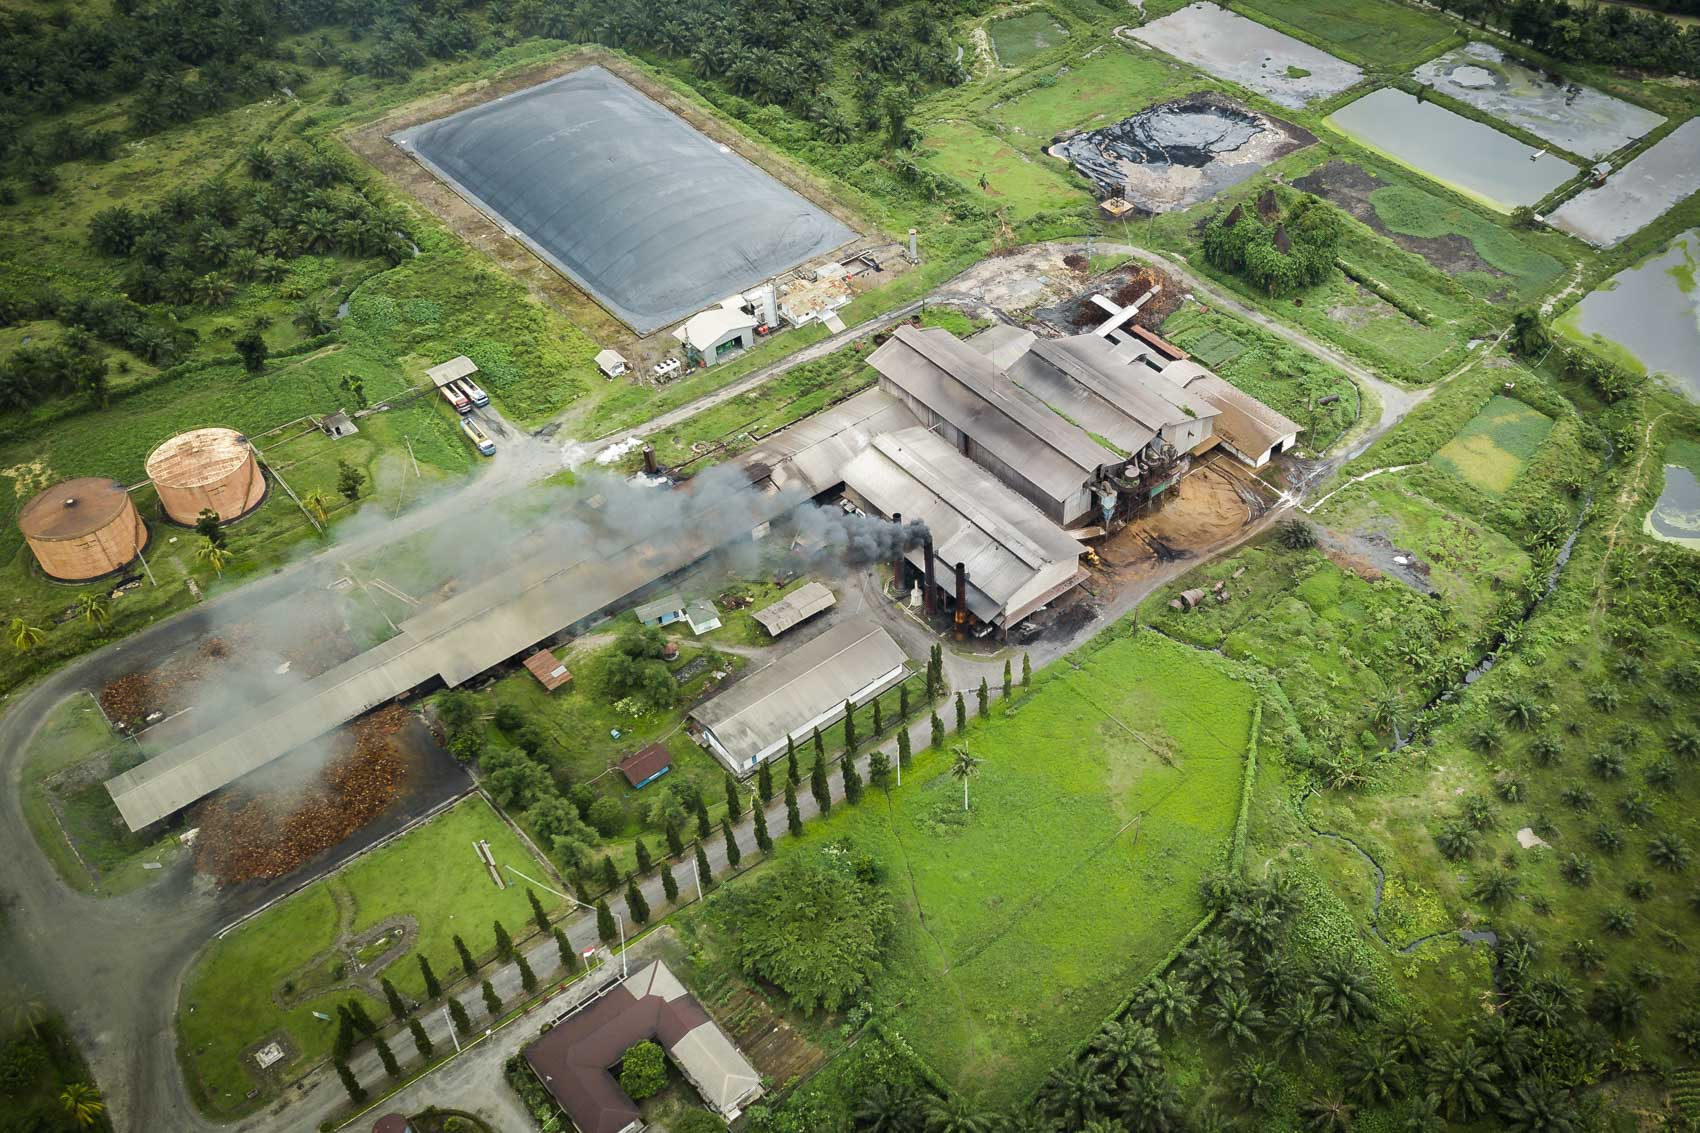 Aerial view of palm oil factory in Sumatra, Indonesia © David Coulson Canadian conservation photojournalist